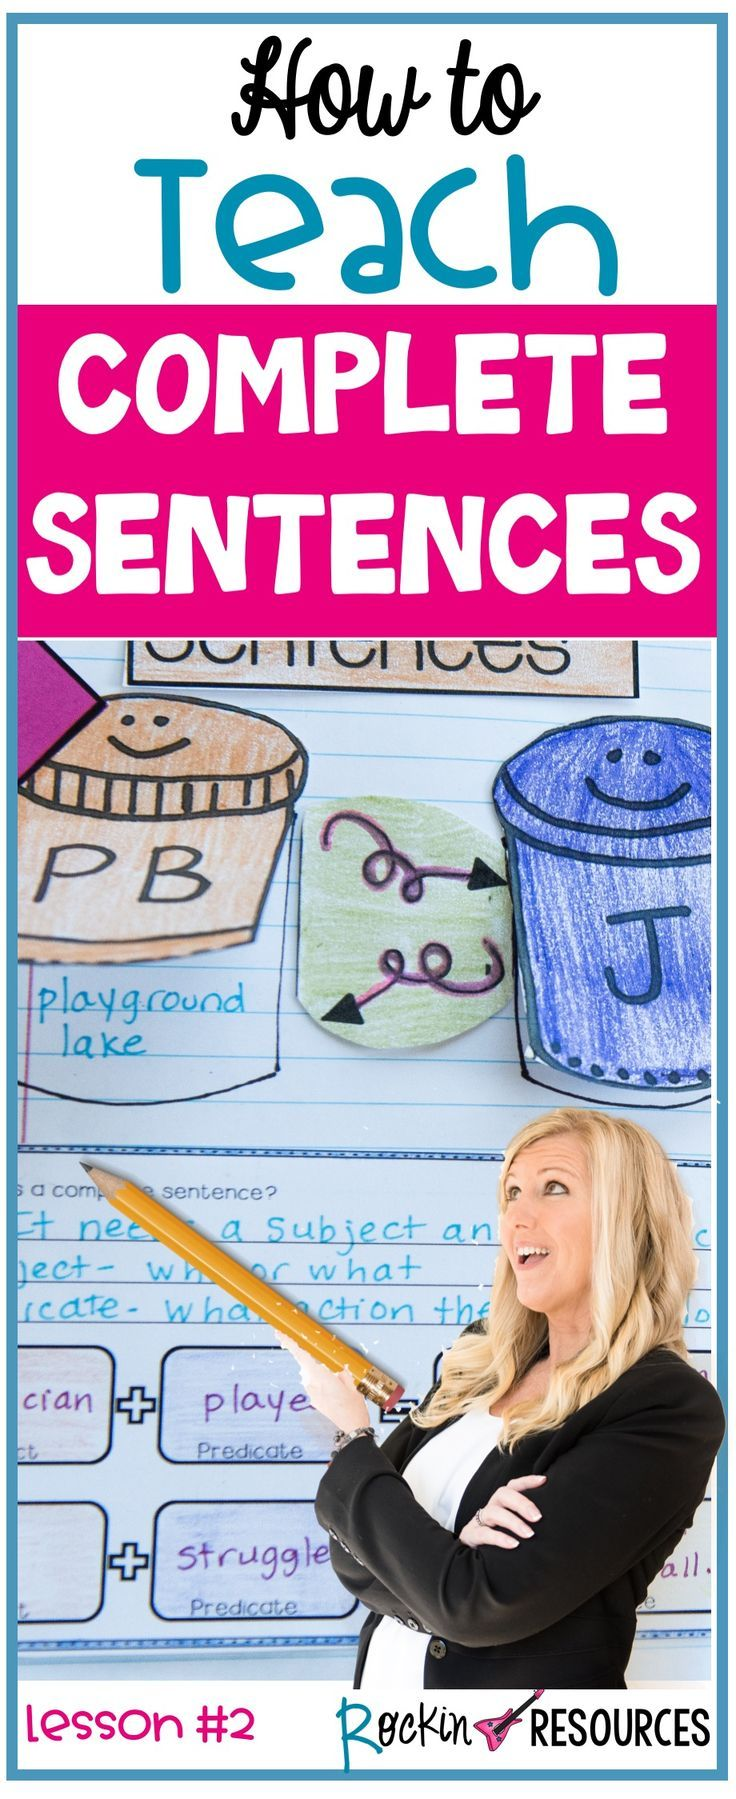 This lesson will focus on writing COMPLETE SENTENCES using subjects and predicates. Writing in complete sentences is the first basic writing lesson every student should learn. Sentence structure is important to help students write in journals, responses to reading, paragraphs, essays, book reports and so much more. It will lay the foundation for good writing practices throughout the year! These ideas are ideal for any writing curriculum and are a part of a series of mini lessons for writer's…